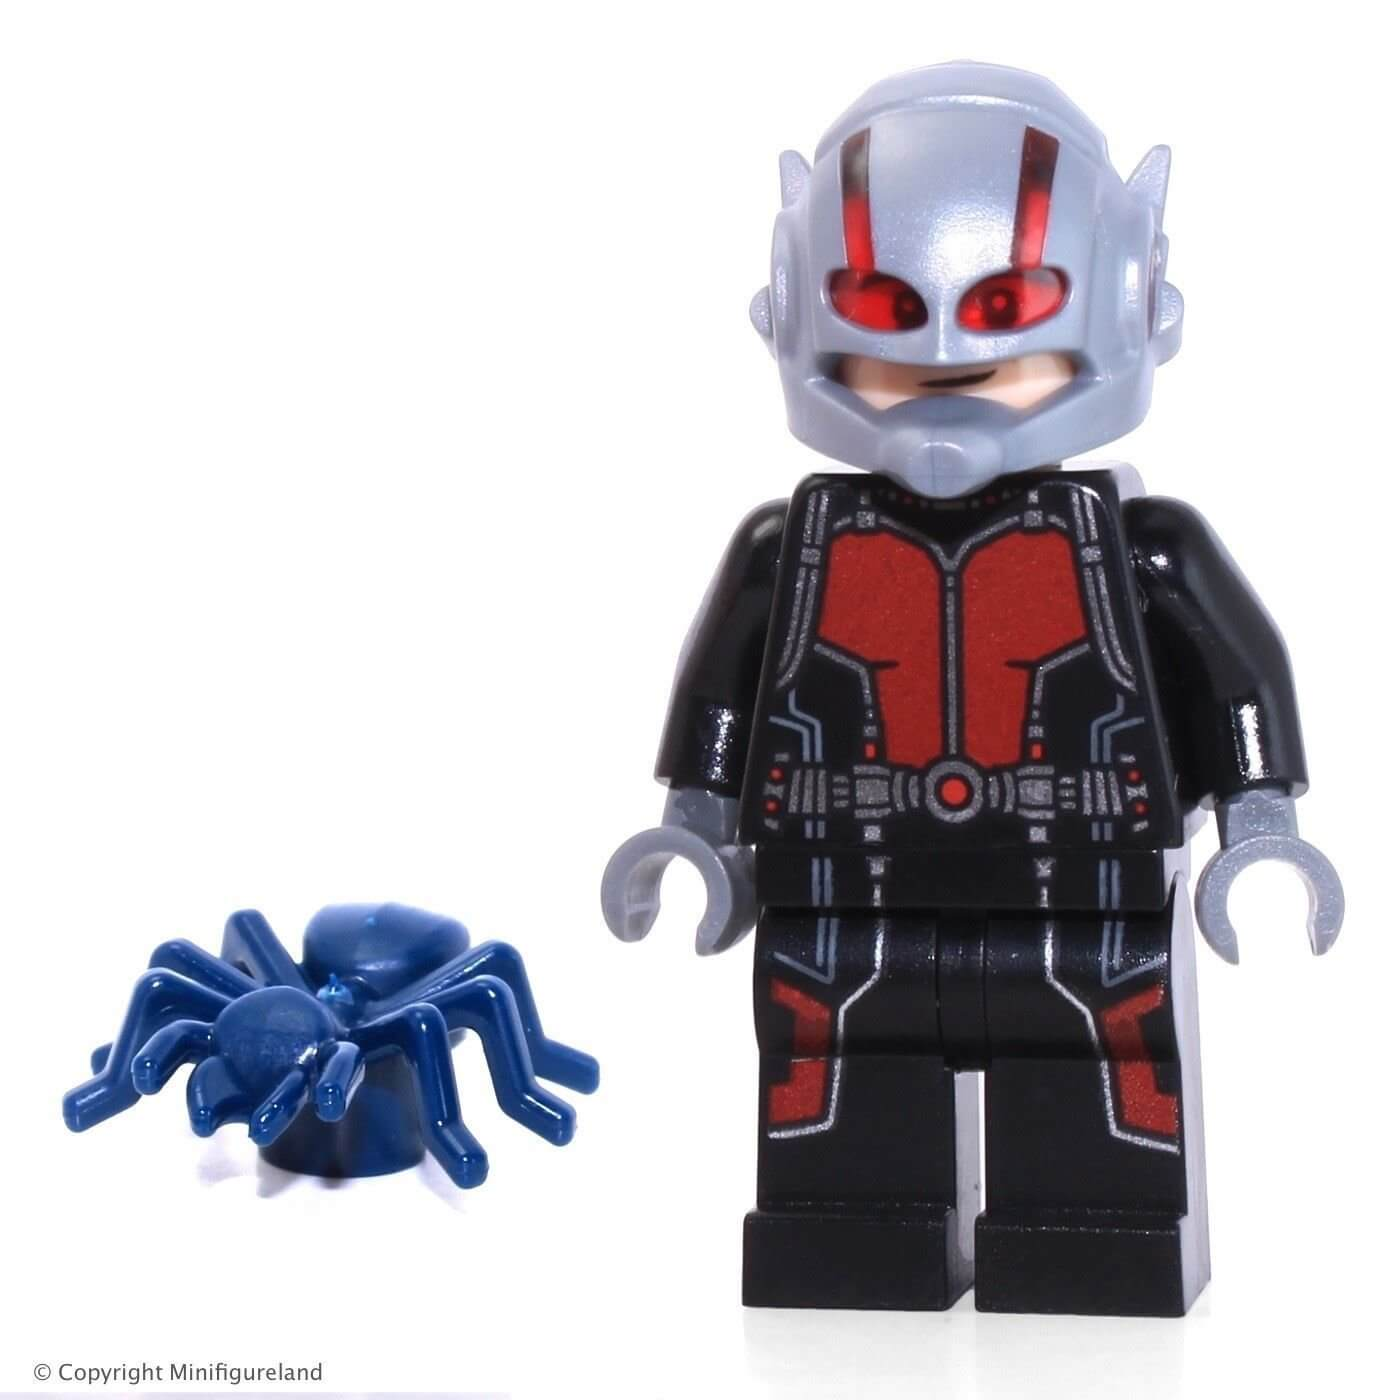 It's just an image of Fan Marvel Heroes Ant Man